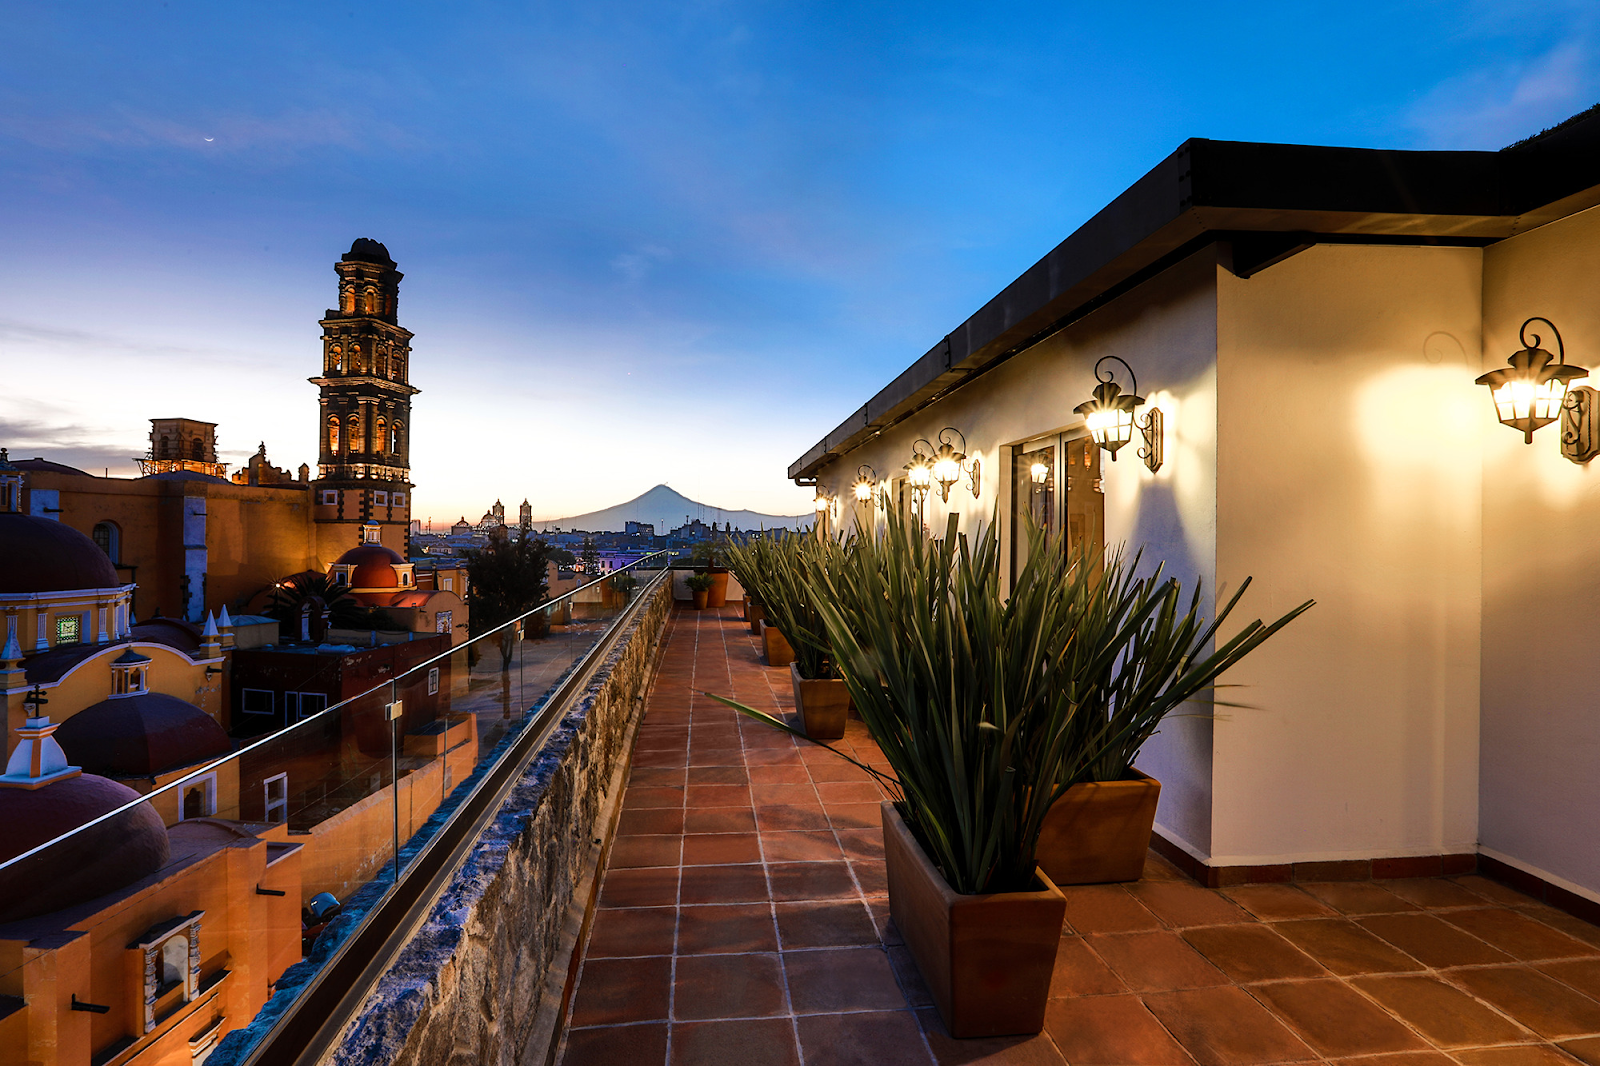 Azul Talavera Hotel opens its doors in Puebla